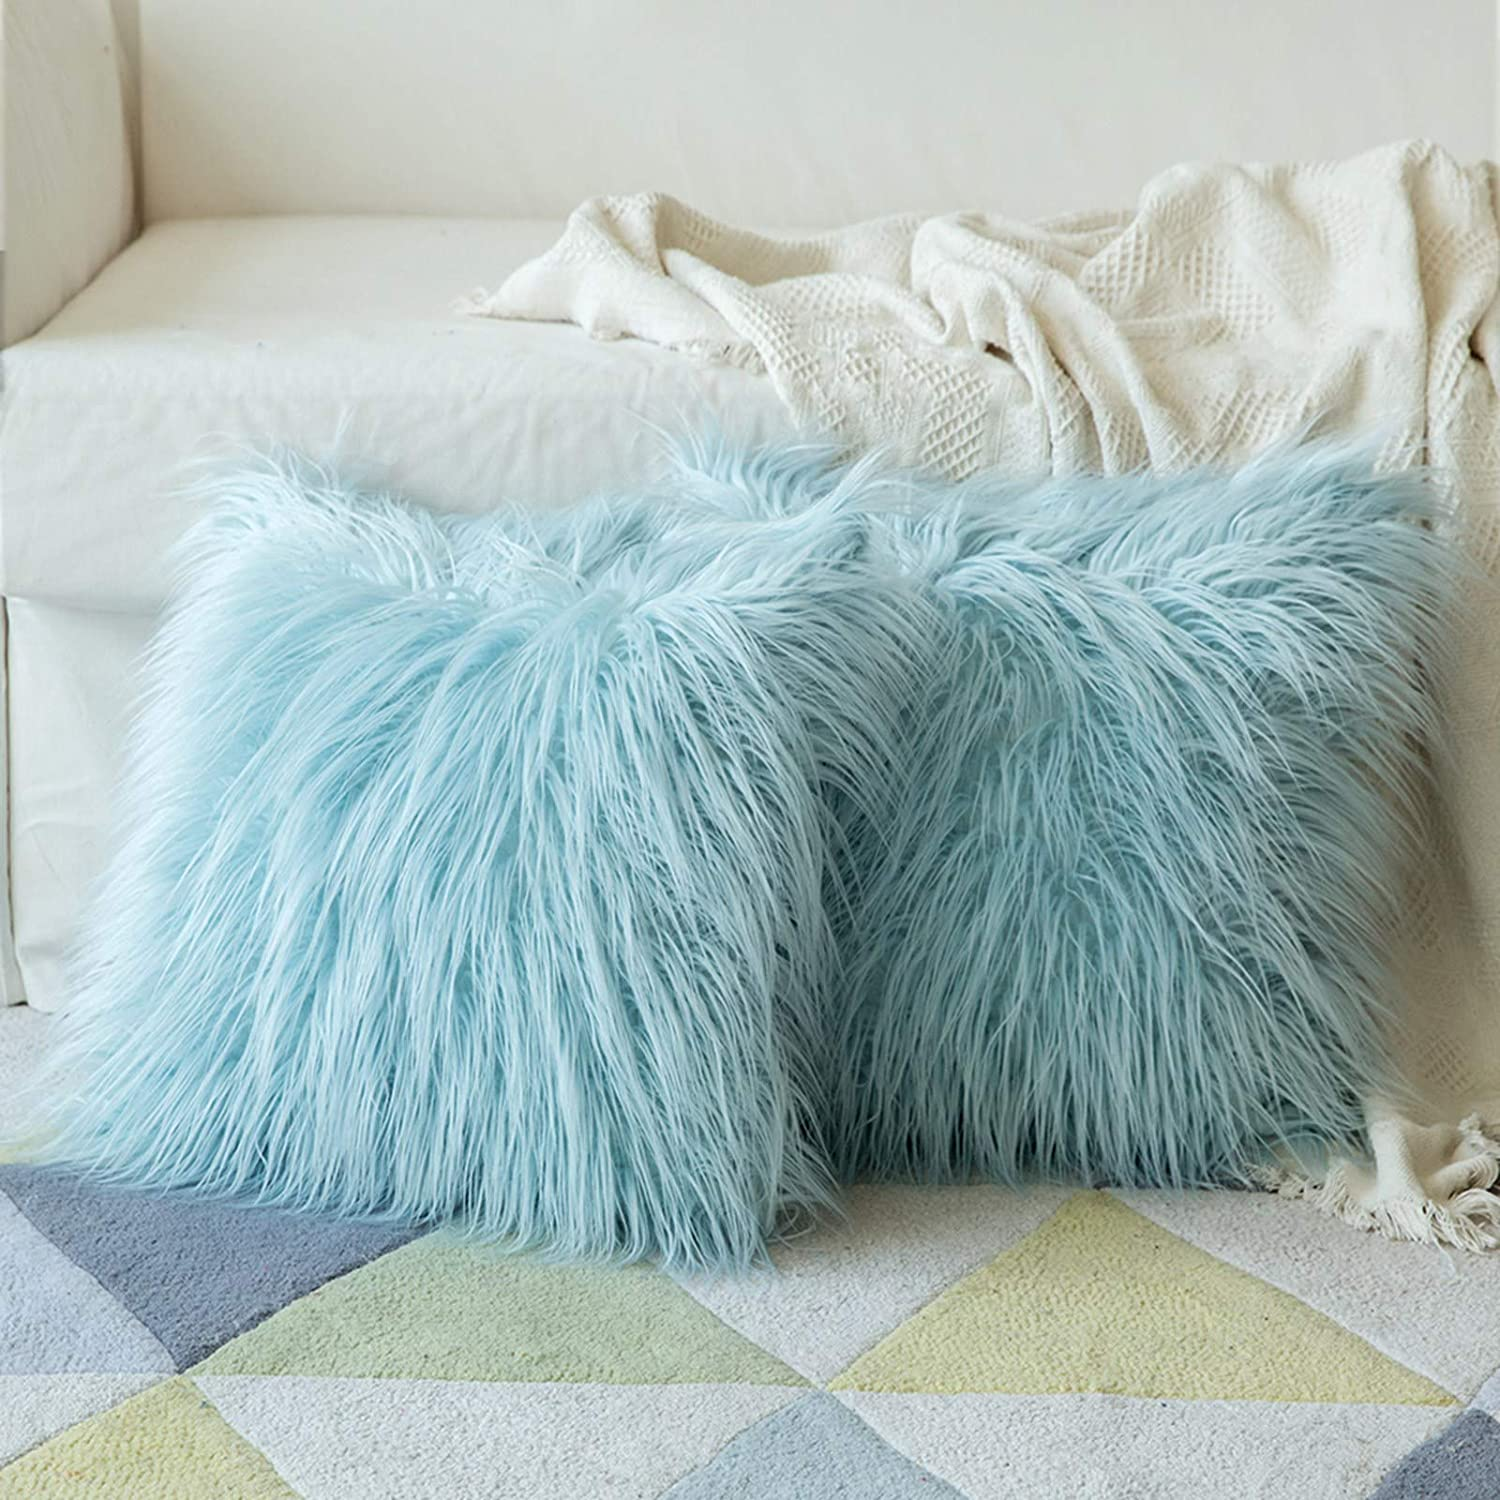 Miulee Fluffy Soft Decorative Square Pillow Covers Plush Pillow Case Faux Fur Cushion Covers For Livingroom Sofa Bedroom 20 X 20 Inch 50 X 50 Cm Set Of 2 Light Blue Amazon Co Uk